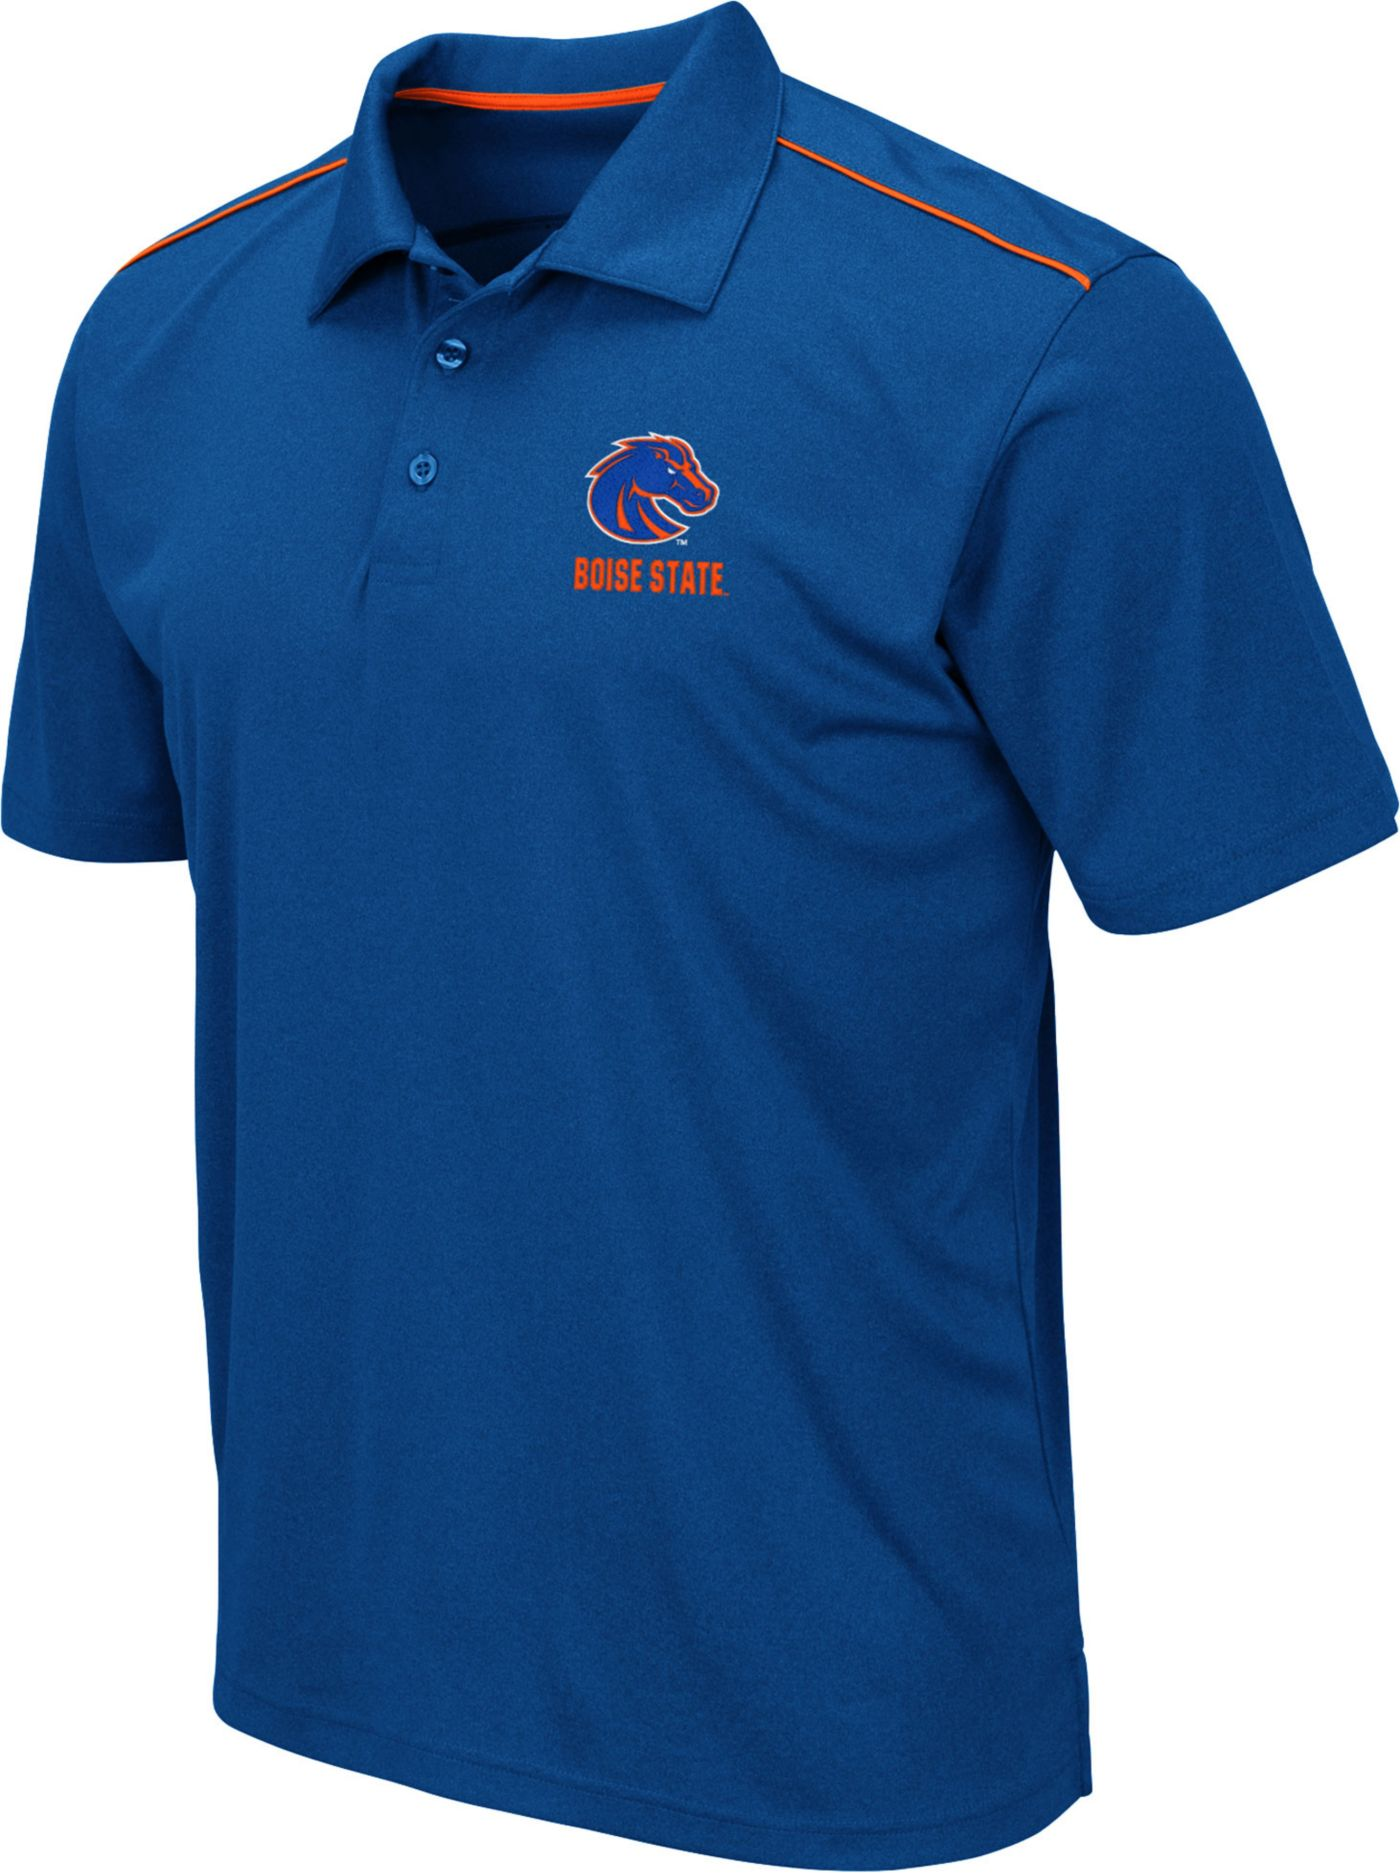 Colosseum Men's Boise State Broncos Blue Eagle Polo